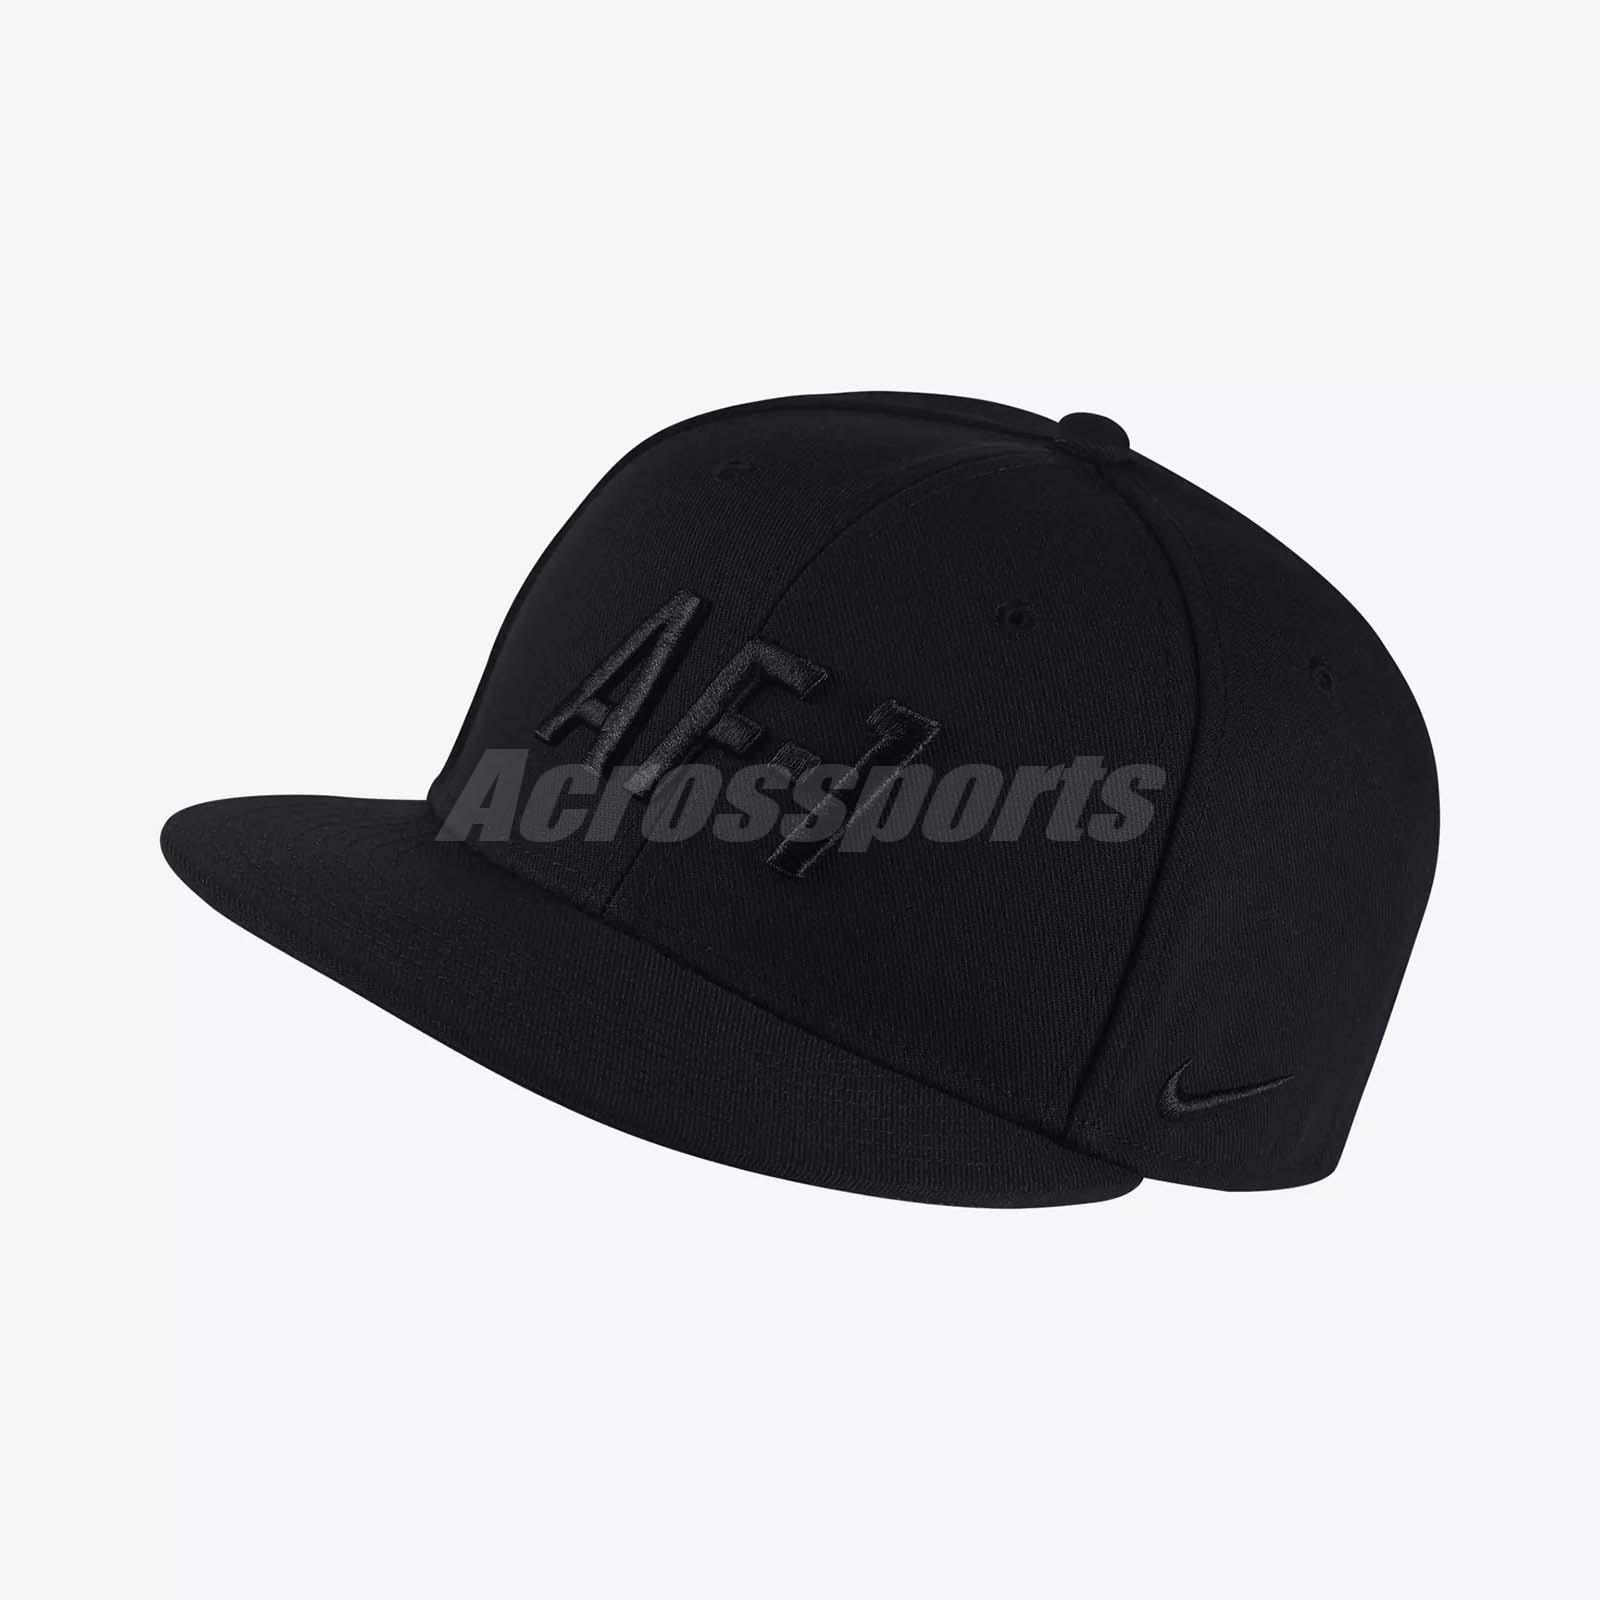 Permatex Logo Mens Women Mesh Back Ball Cap Cotton Visor Hats